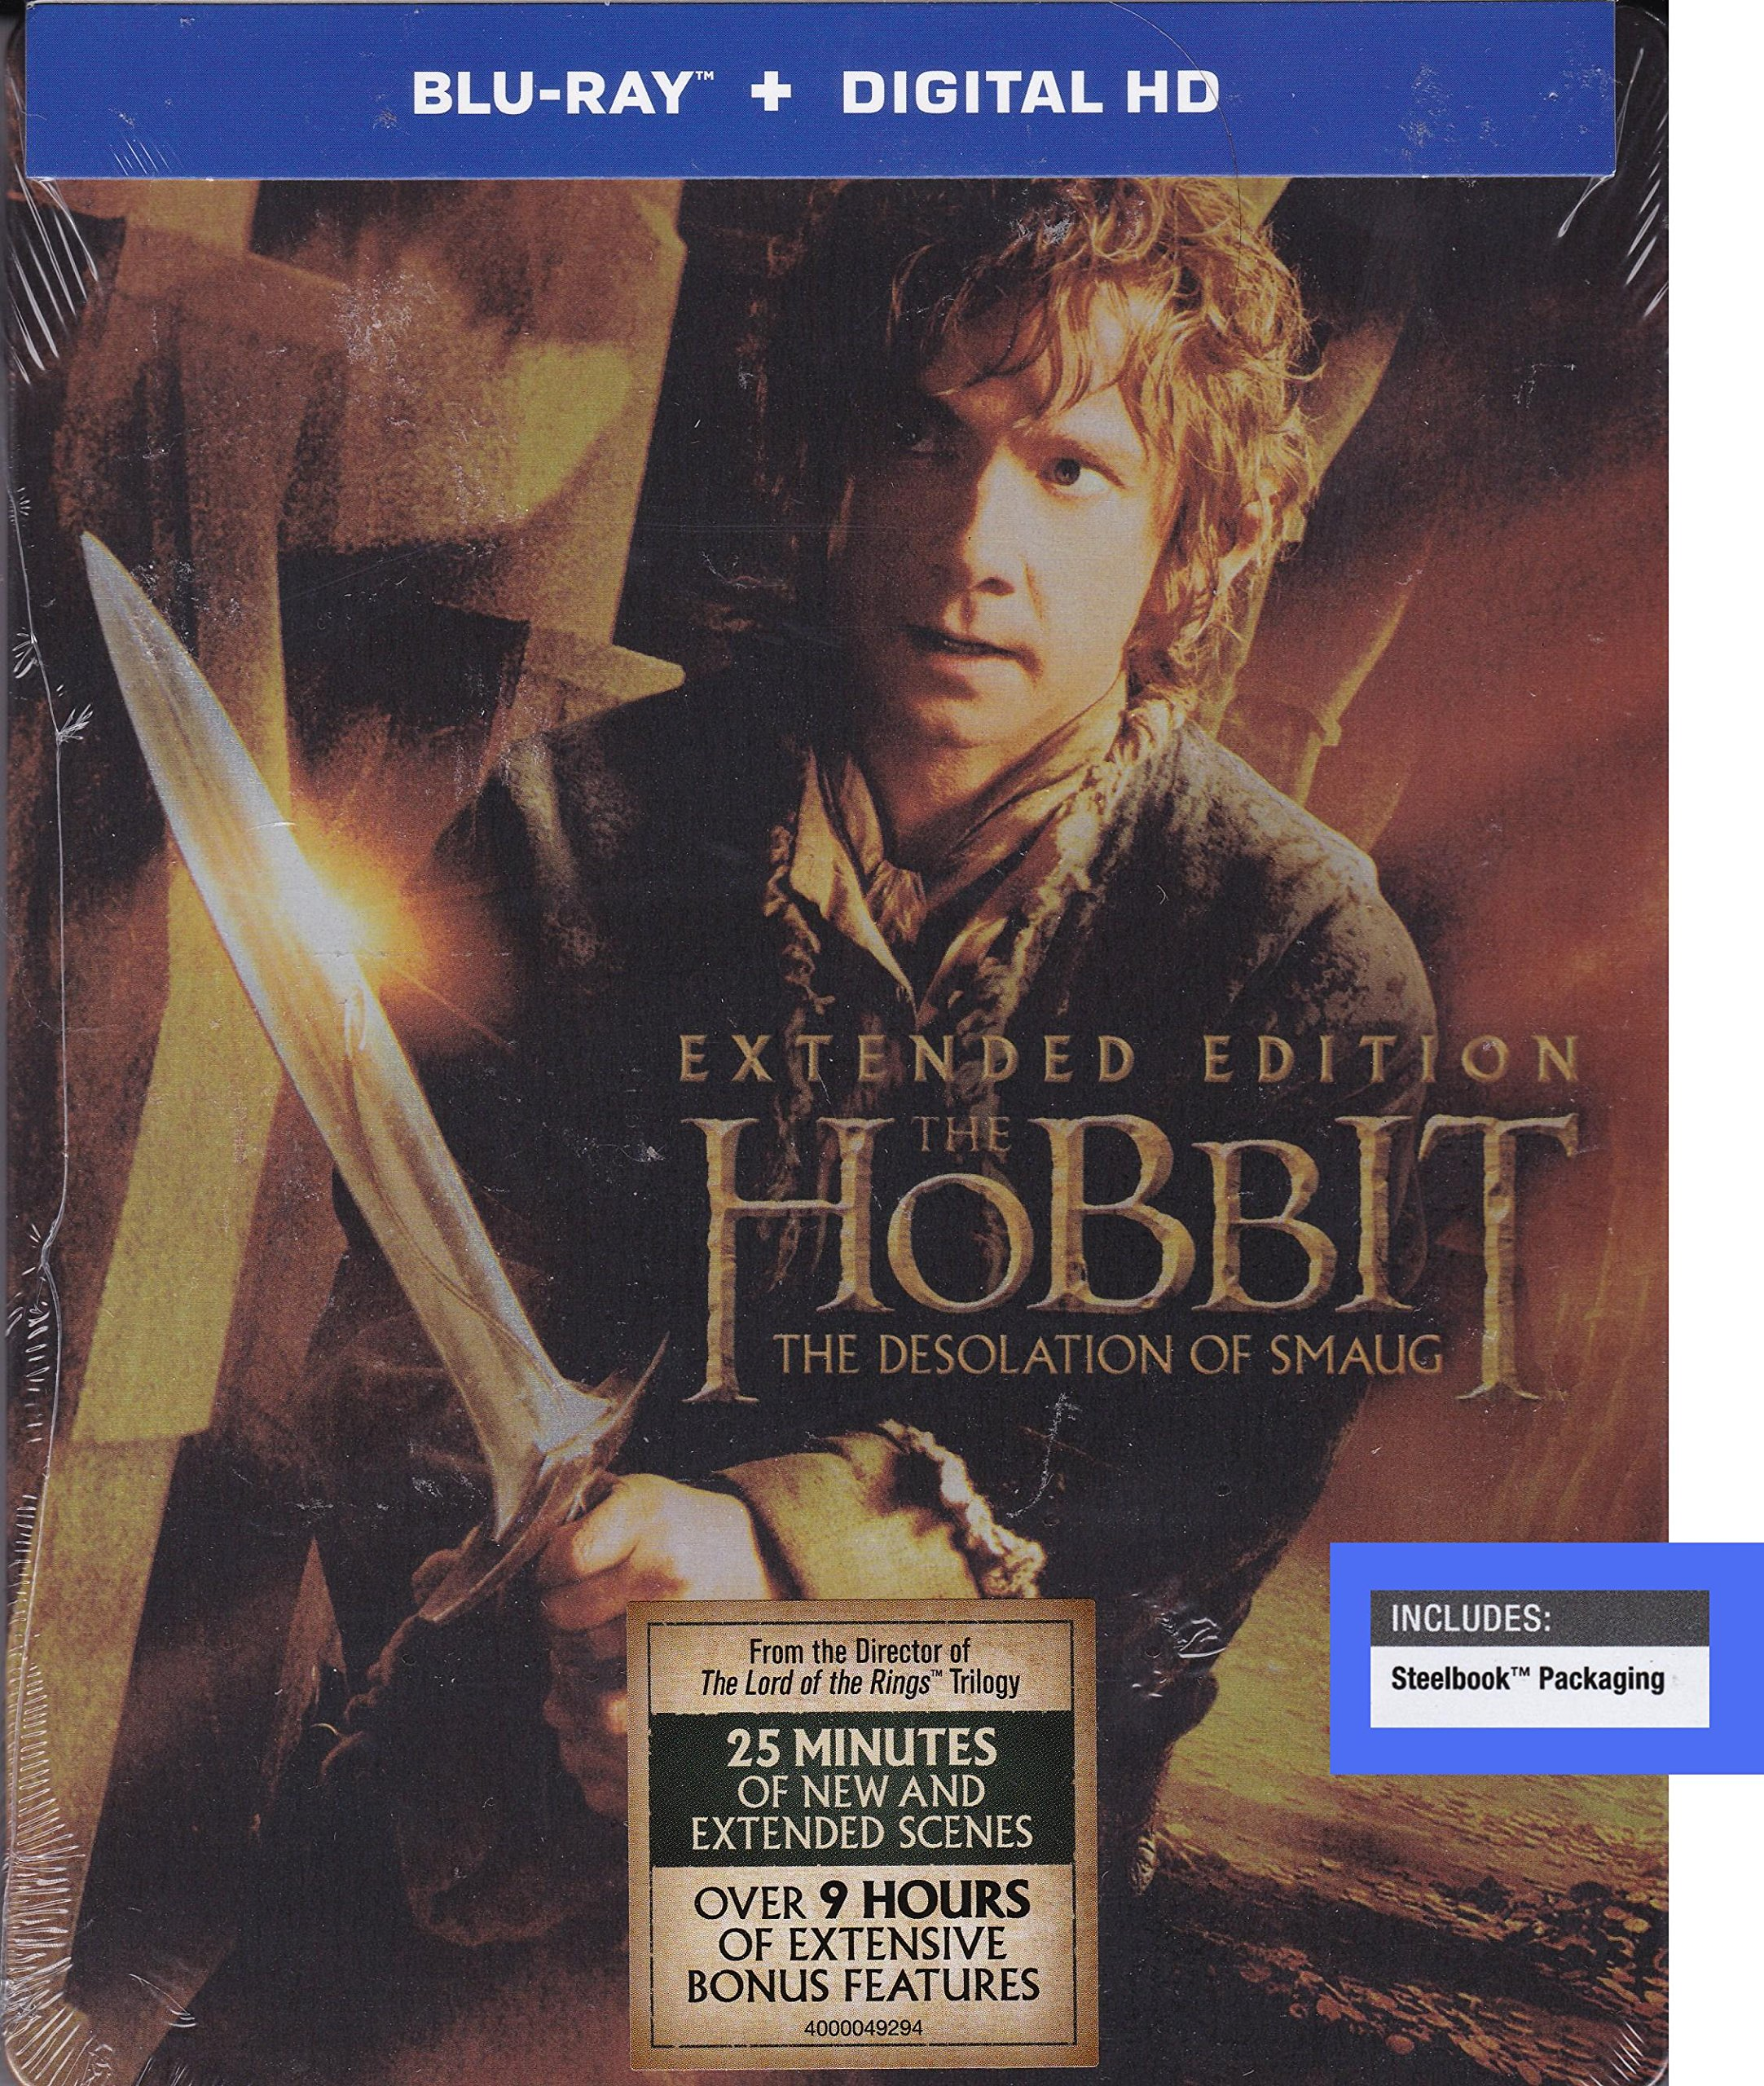 Blu-ray : Hobbit: The Desolation of Smaug Extended Edition S